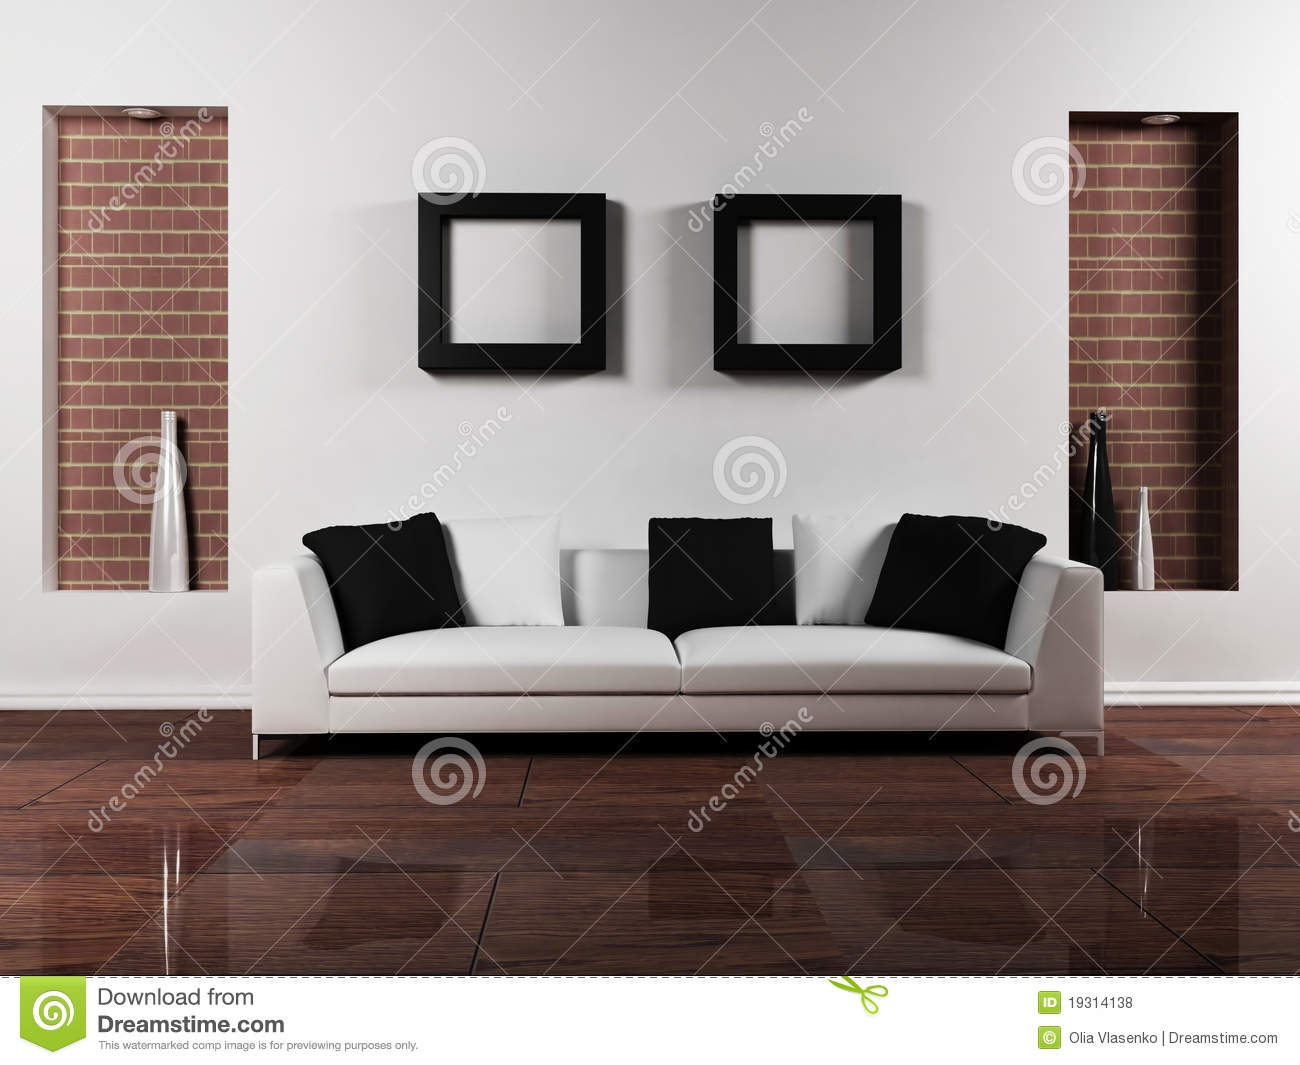 Modern interior design of living room royalty free stock photos image 19314138 - Modern intiror room ...